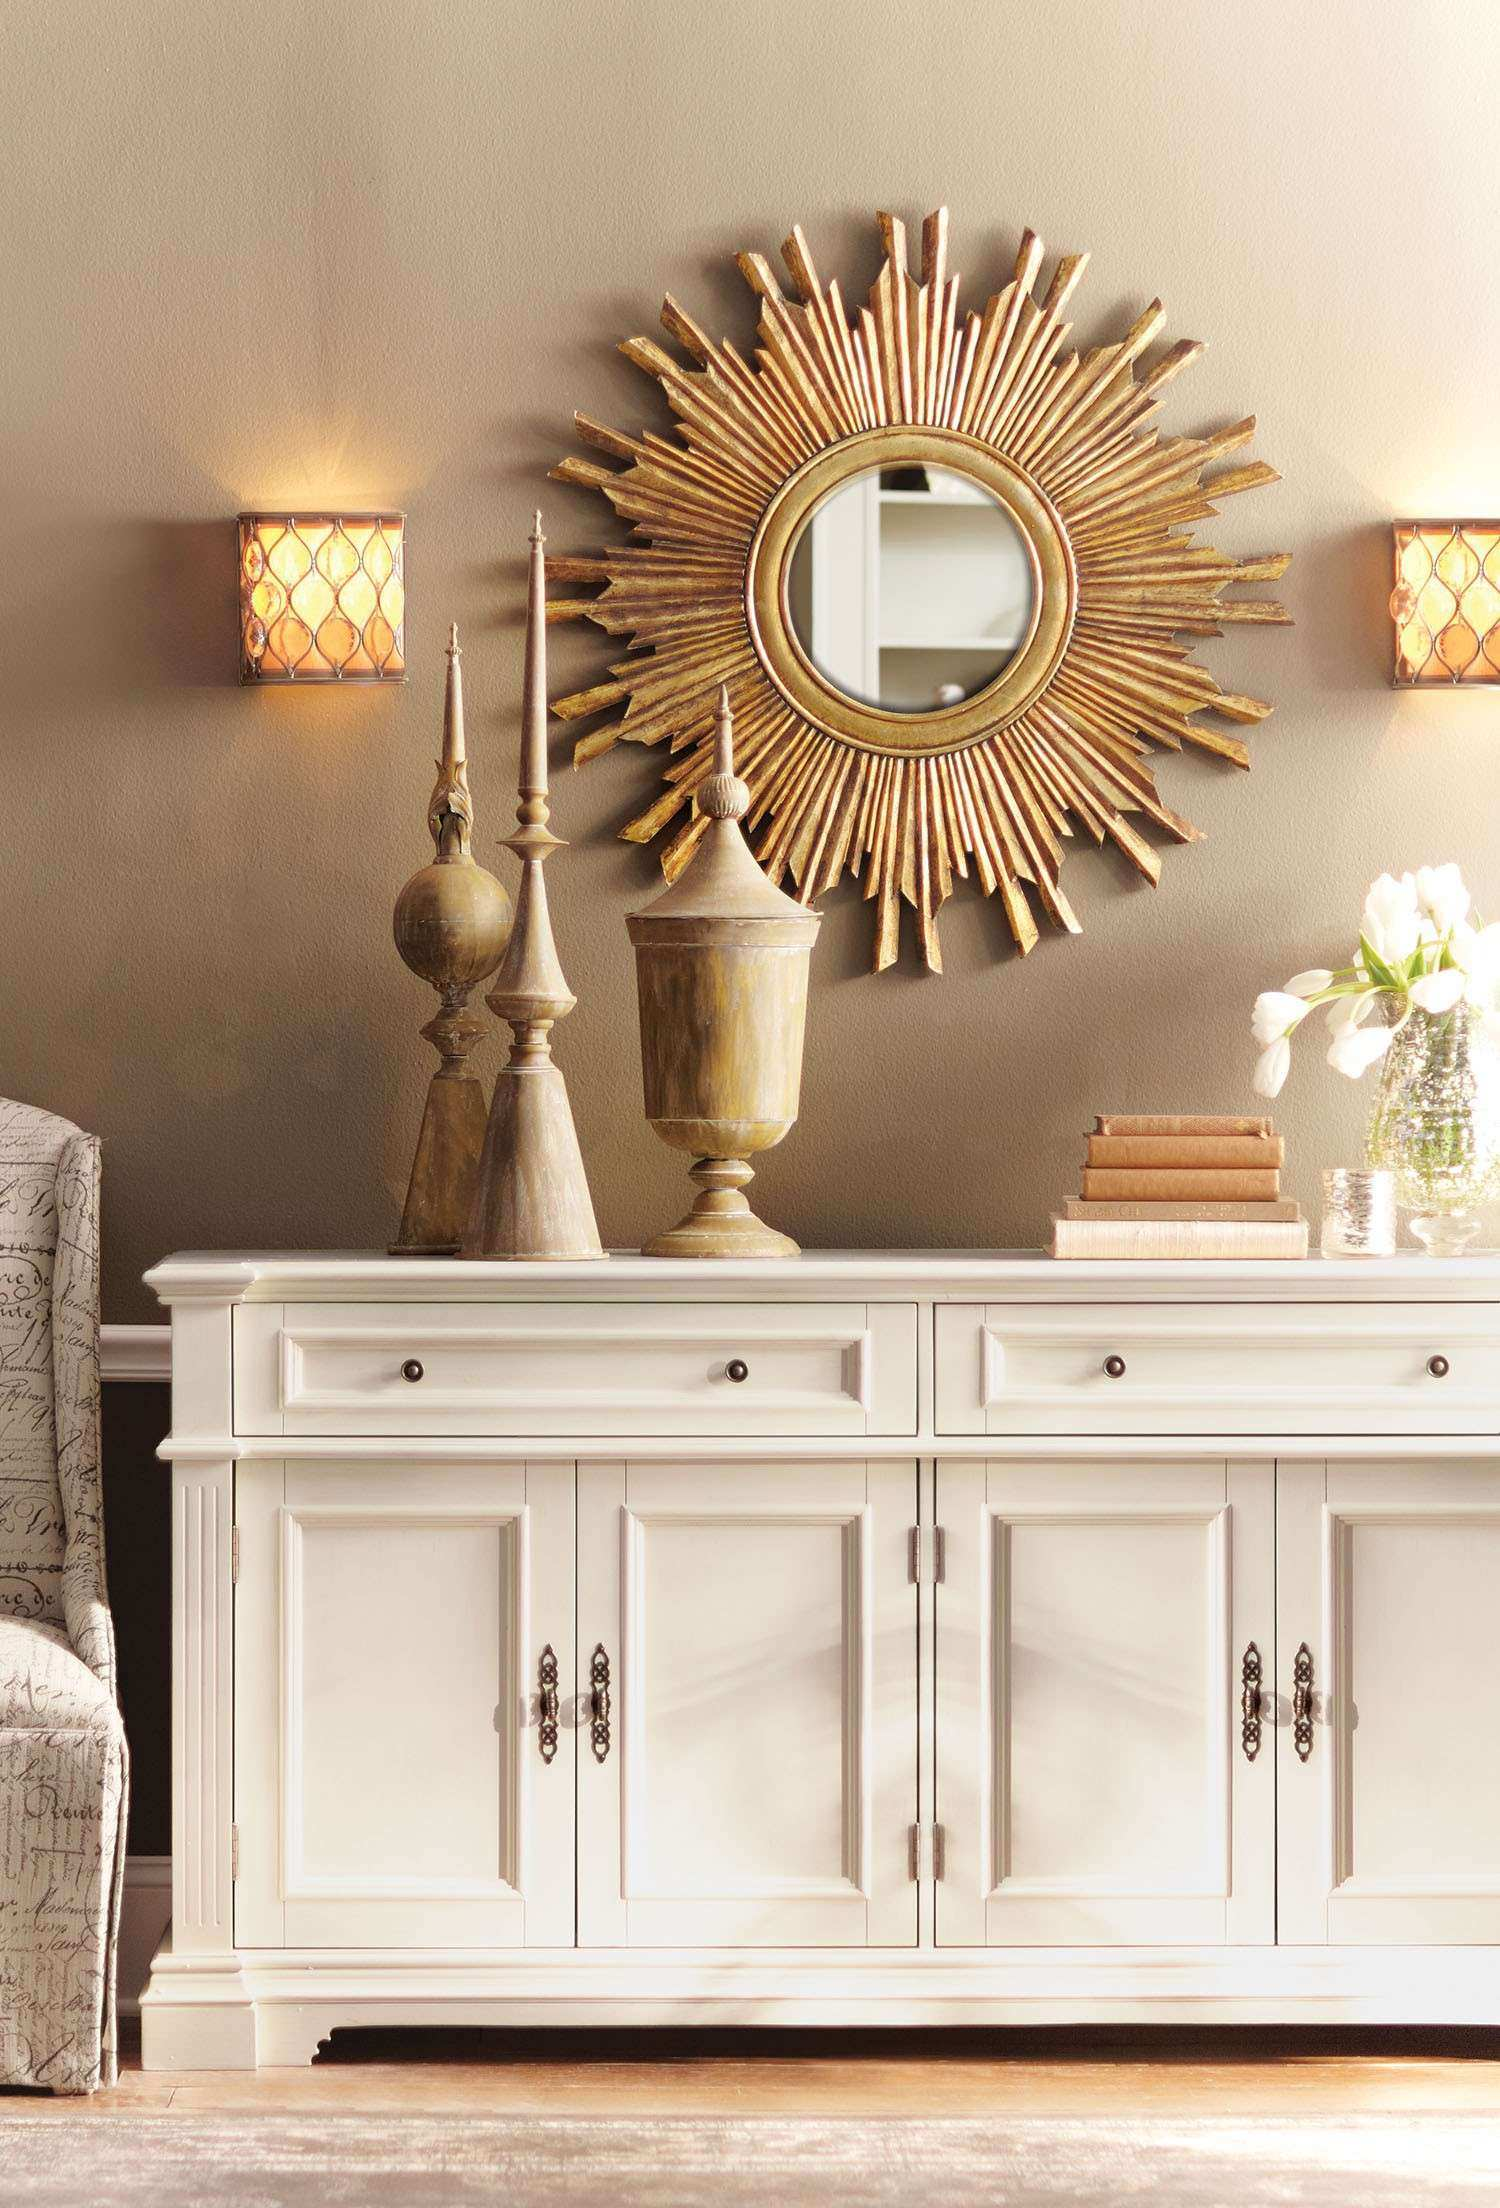 6 Stylish Ways to Add Decorative Wall Mirrors to Your